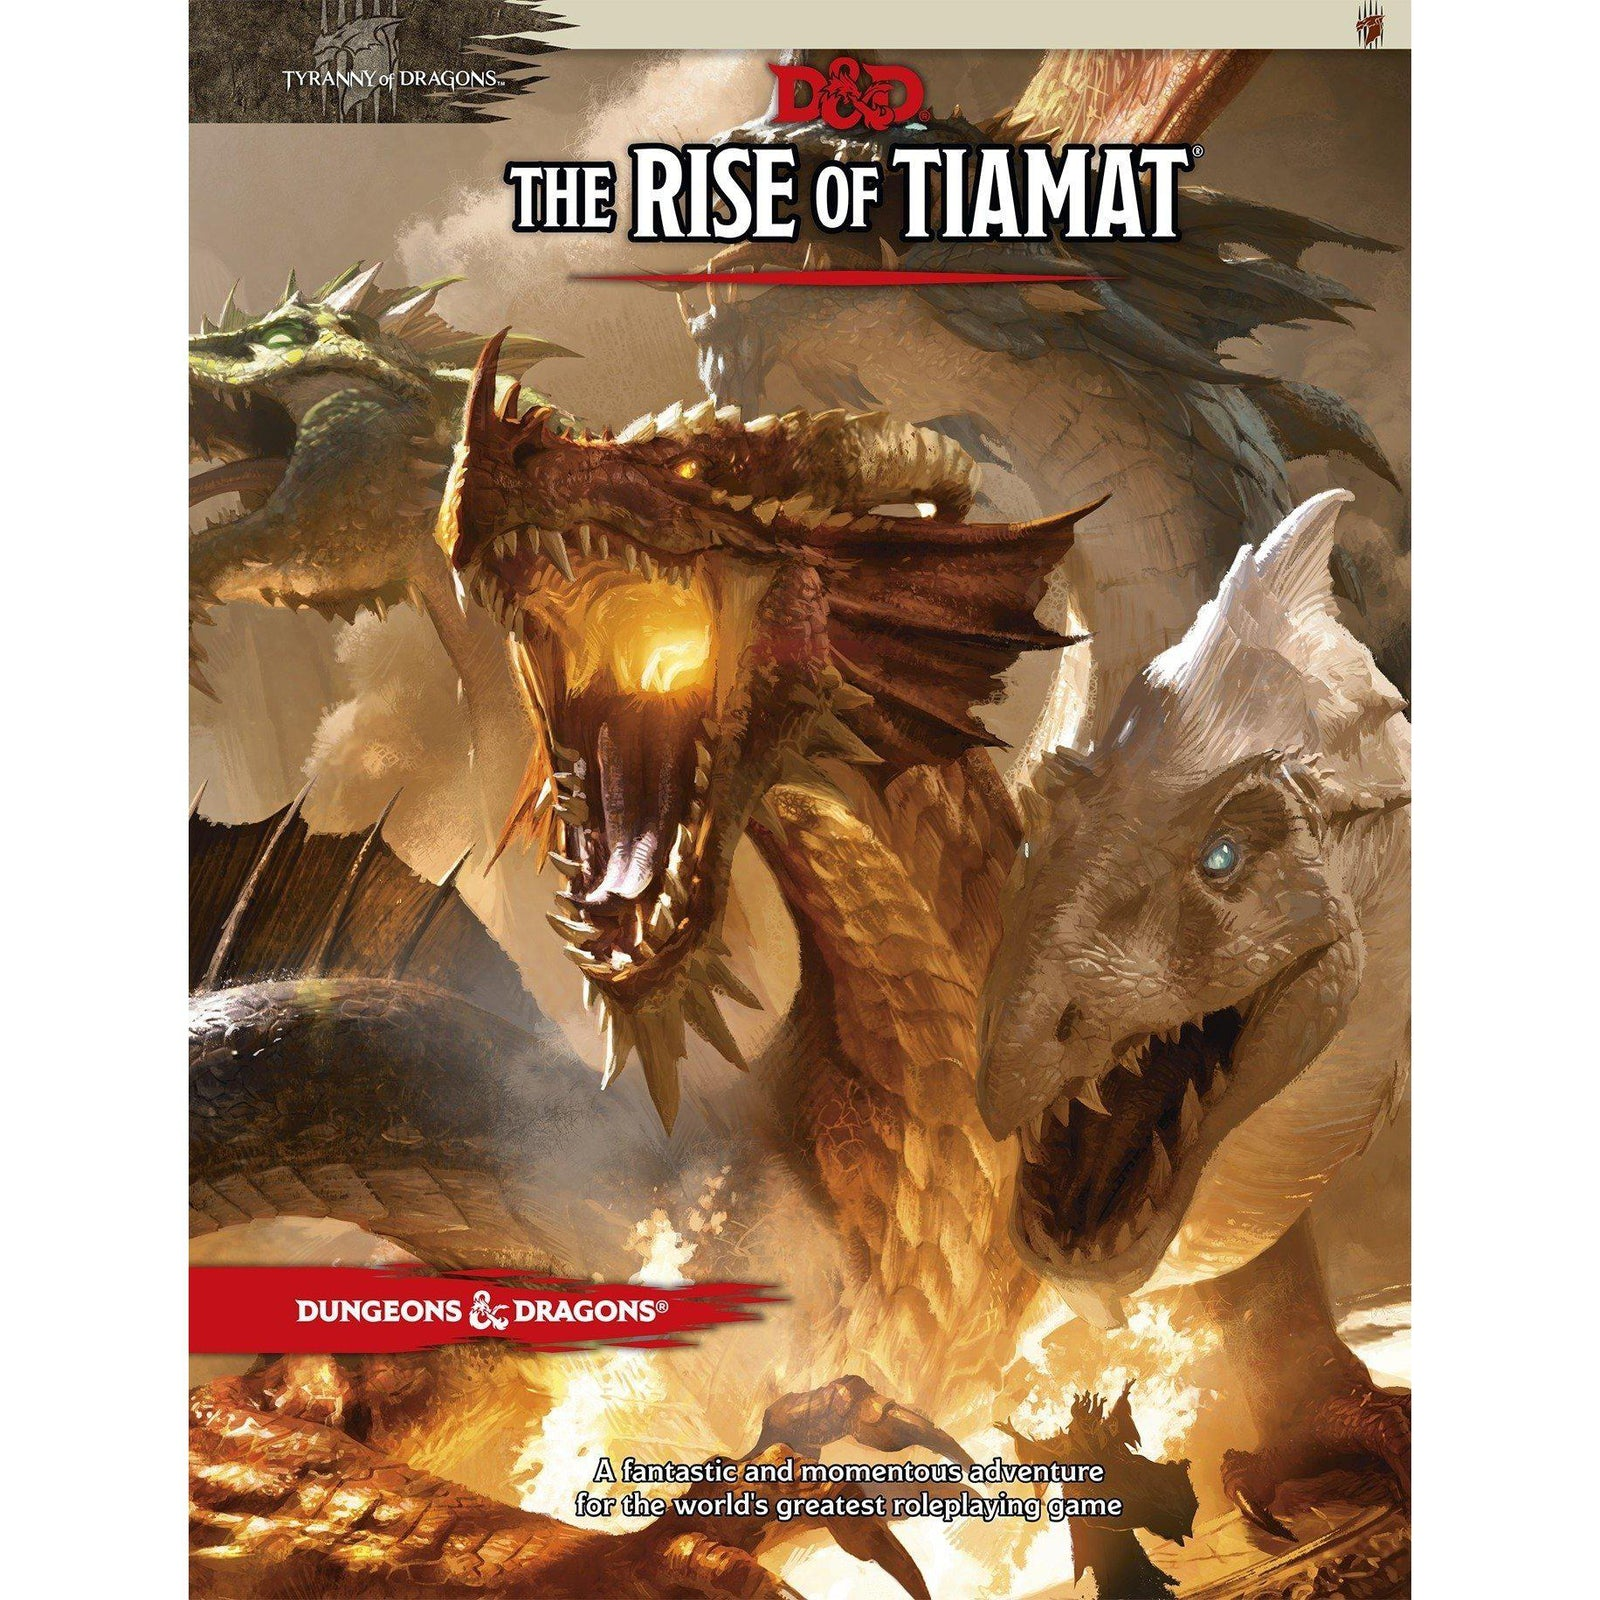 Dungeons and Dragons The Rise of Tiamat - The Sword & Board